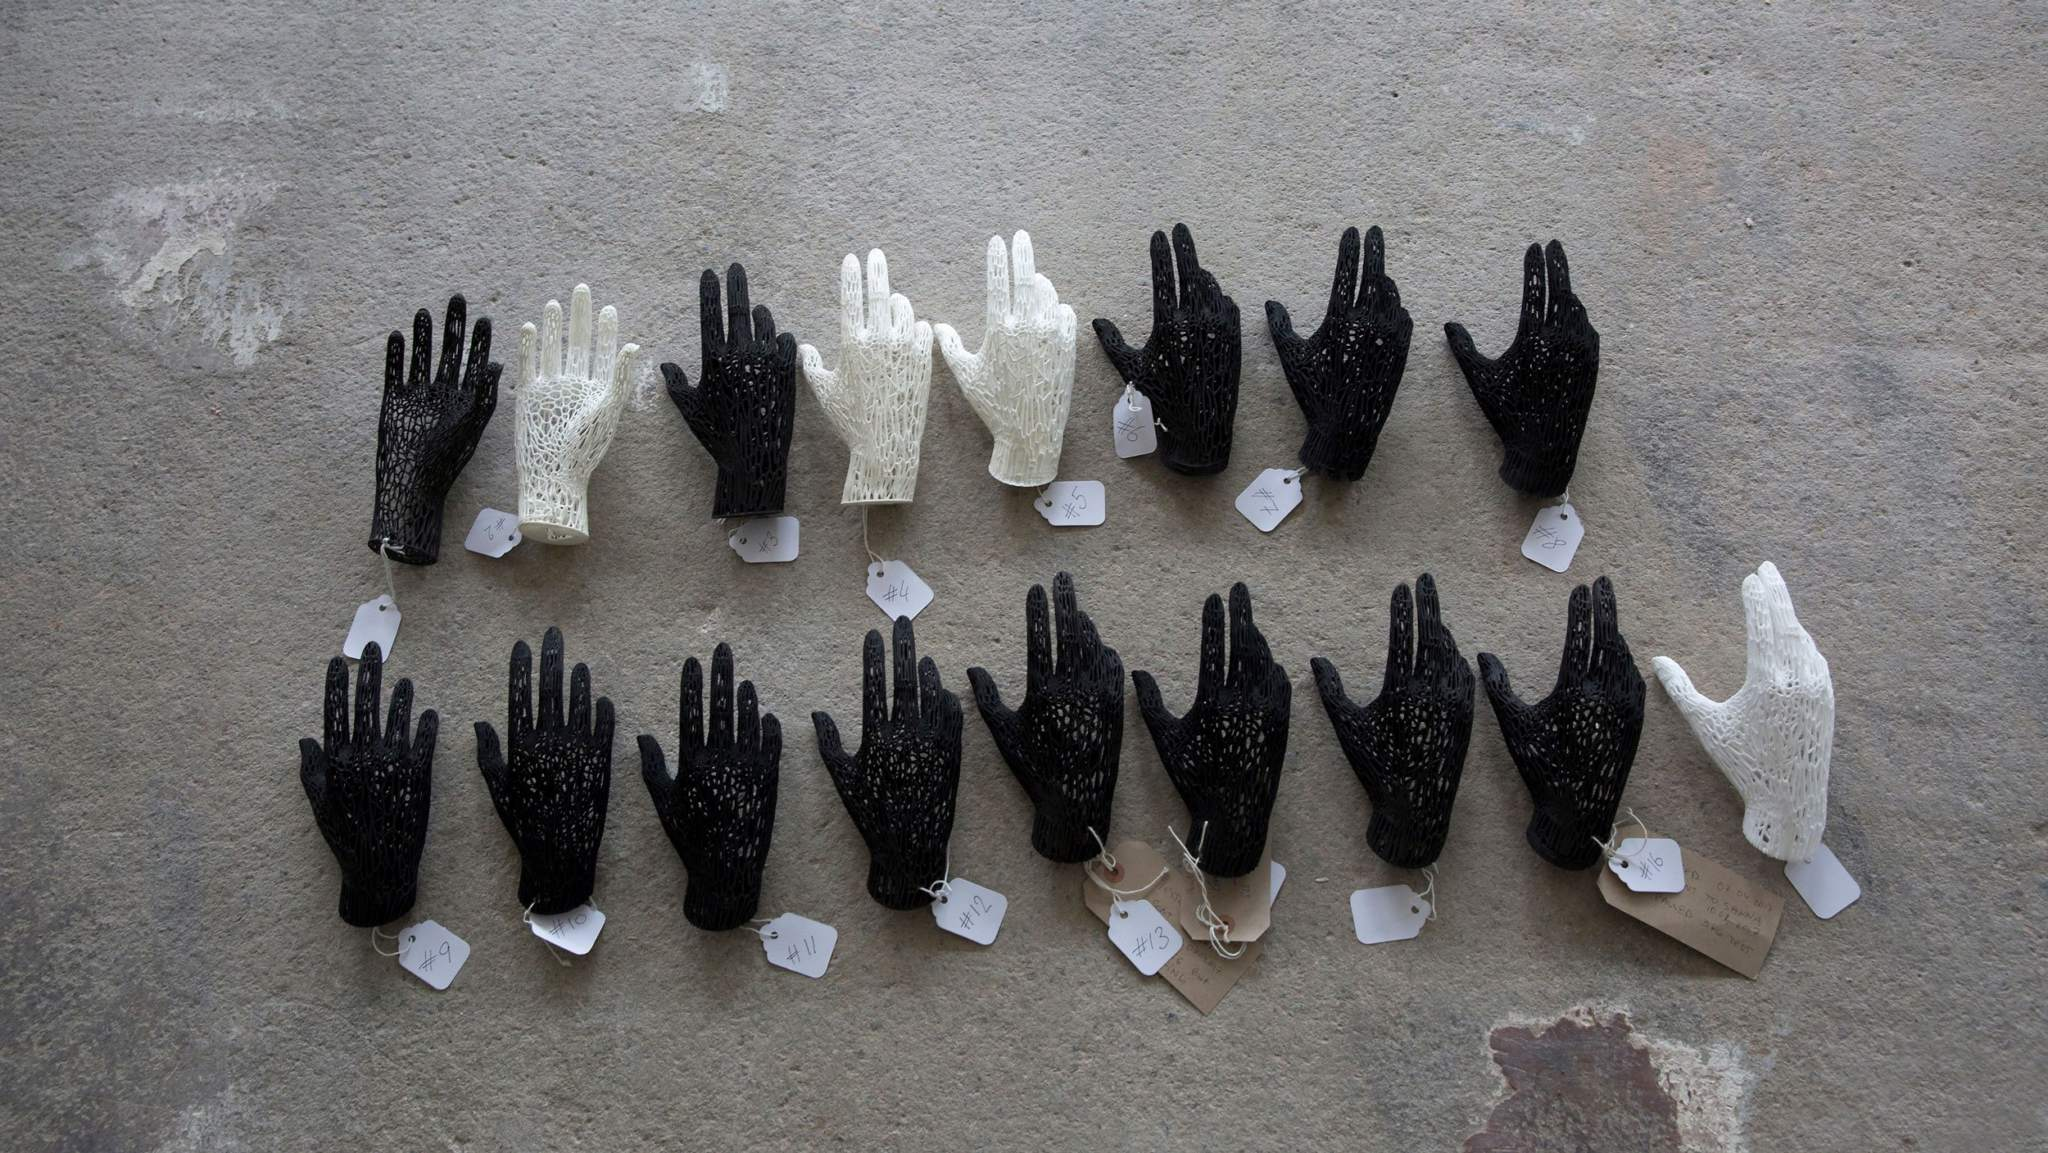 The 3D printed hands from the OMEDELBAR collection. Photo via IKEA Today.